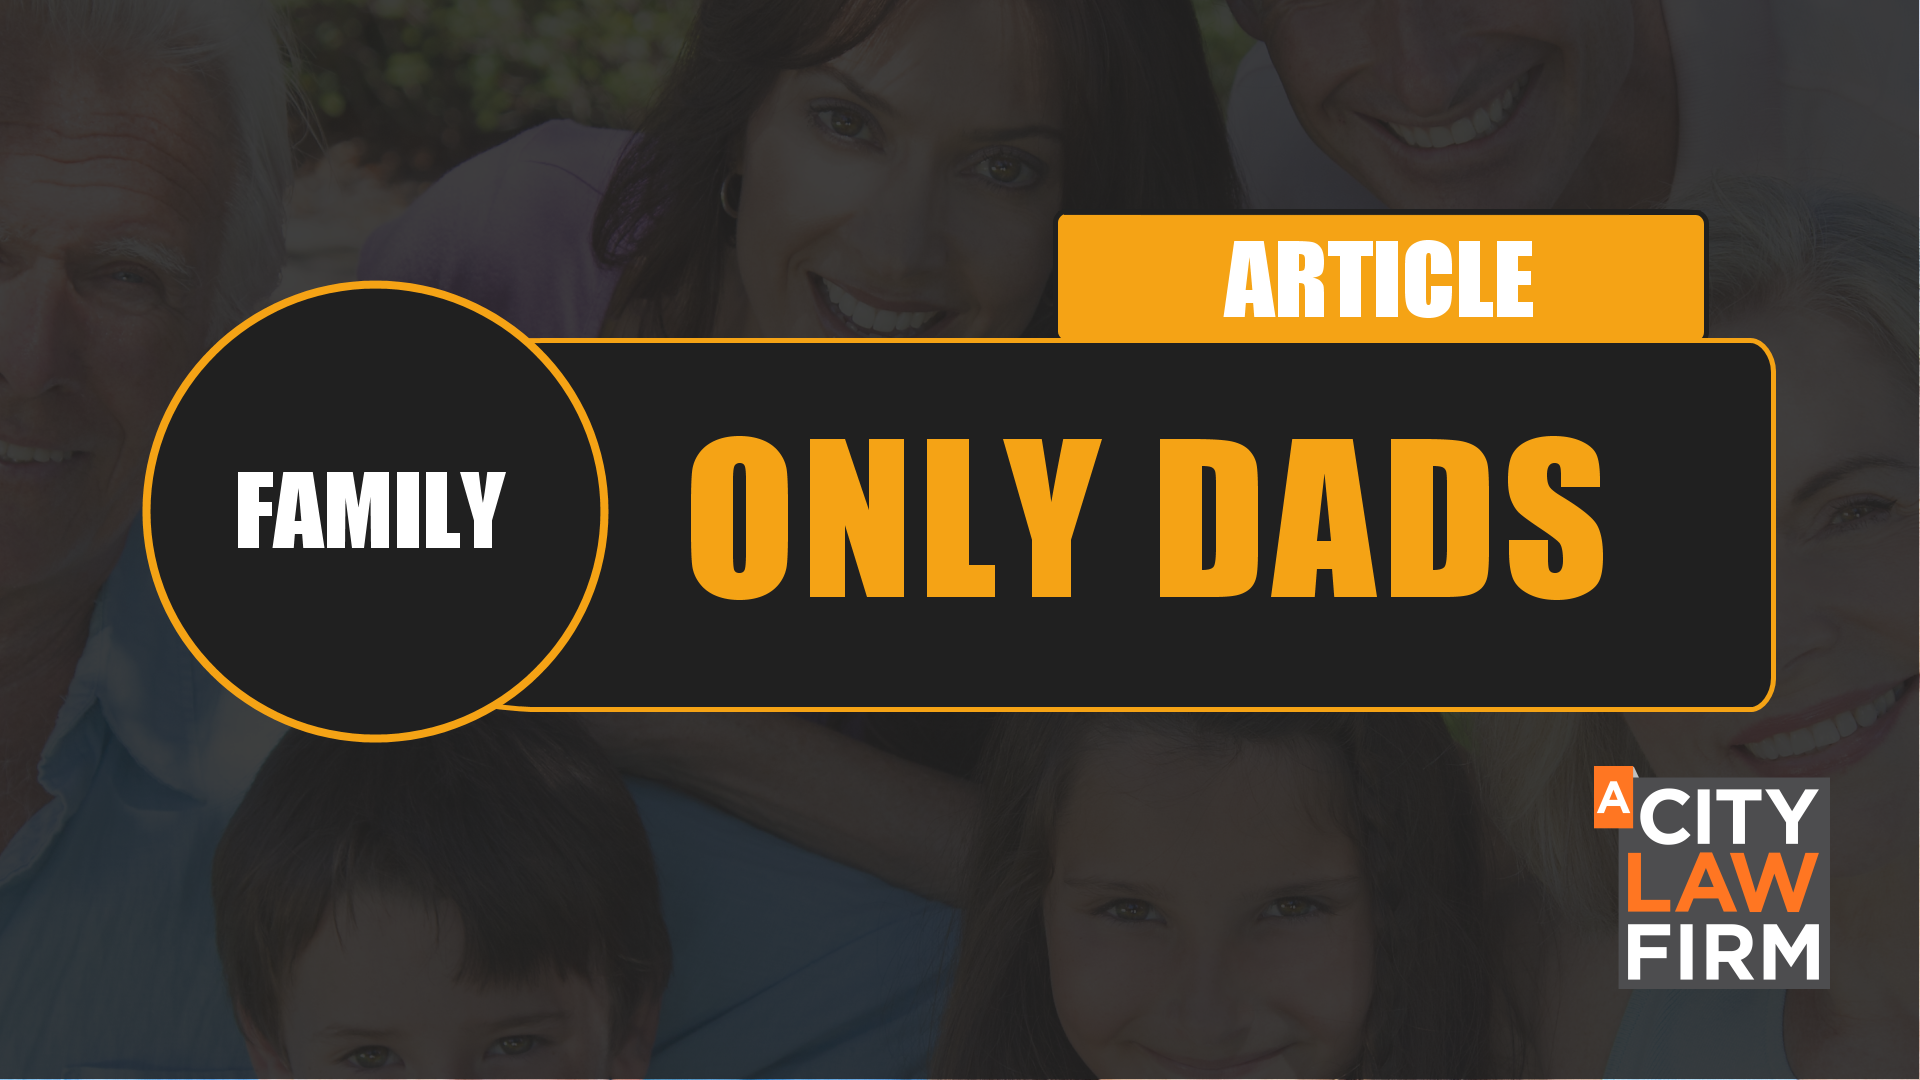 Only Dads Article